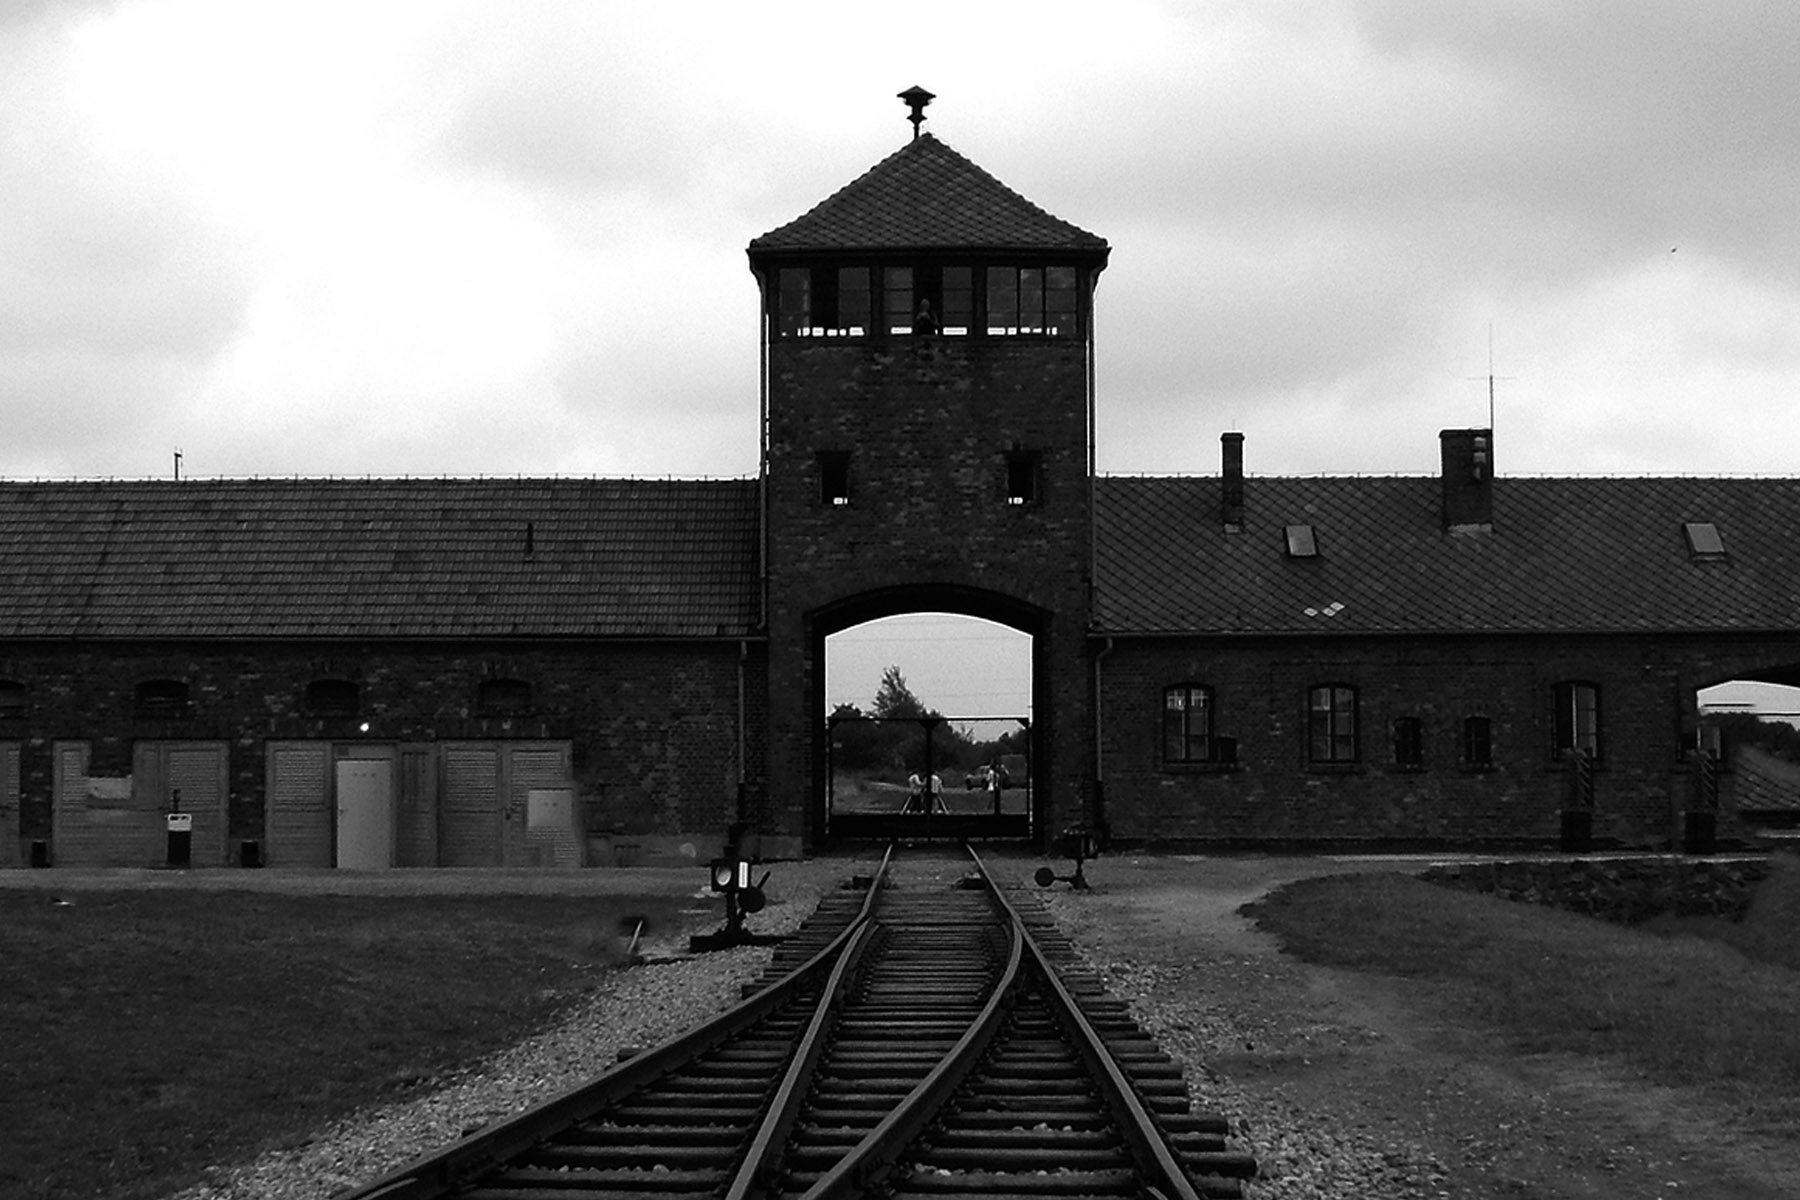 Auschwitz Birkenau – entrance seen from inside